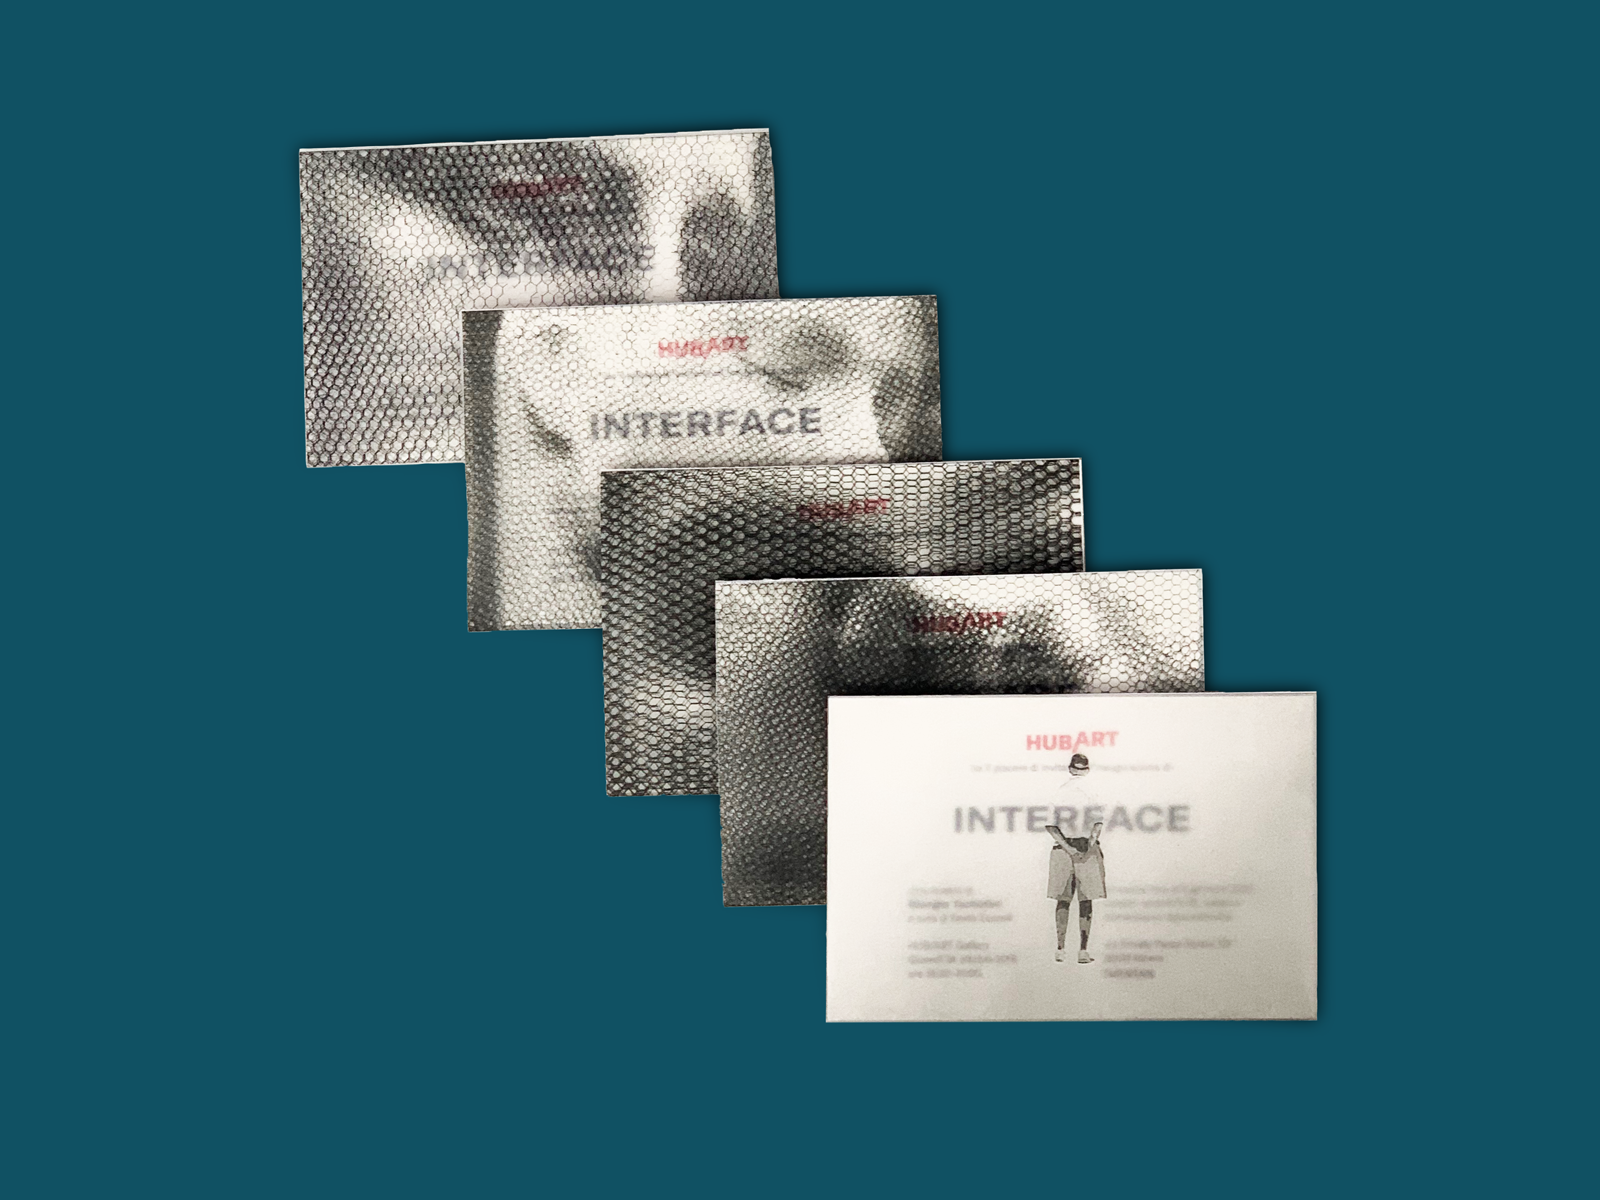 Invitation Cards For The Exhibition Interface By Giorgio